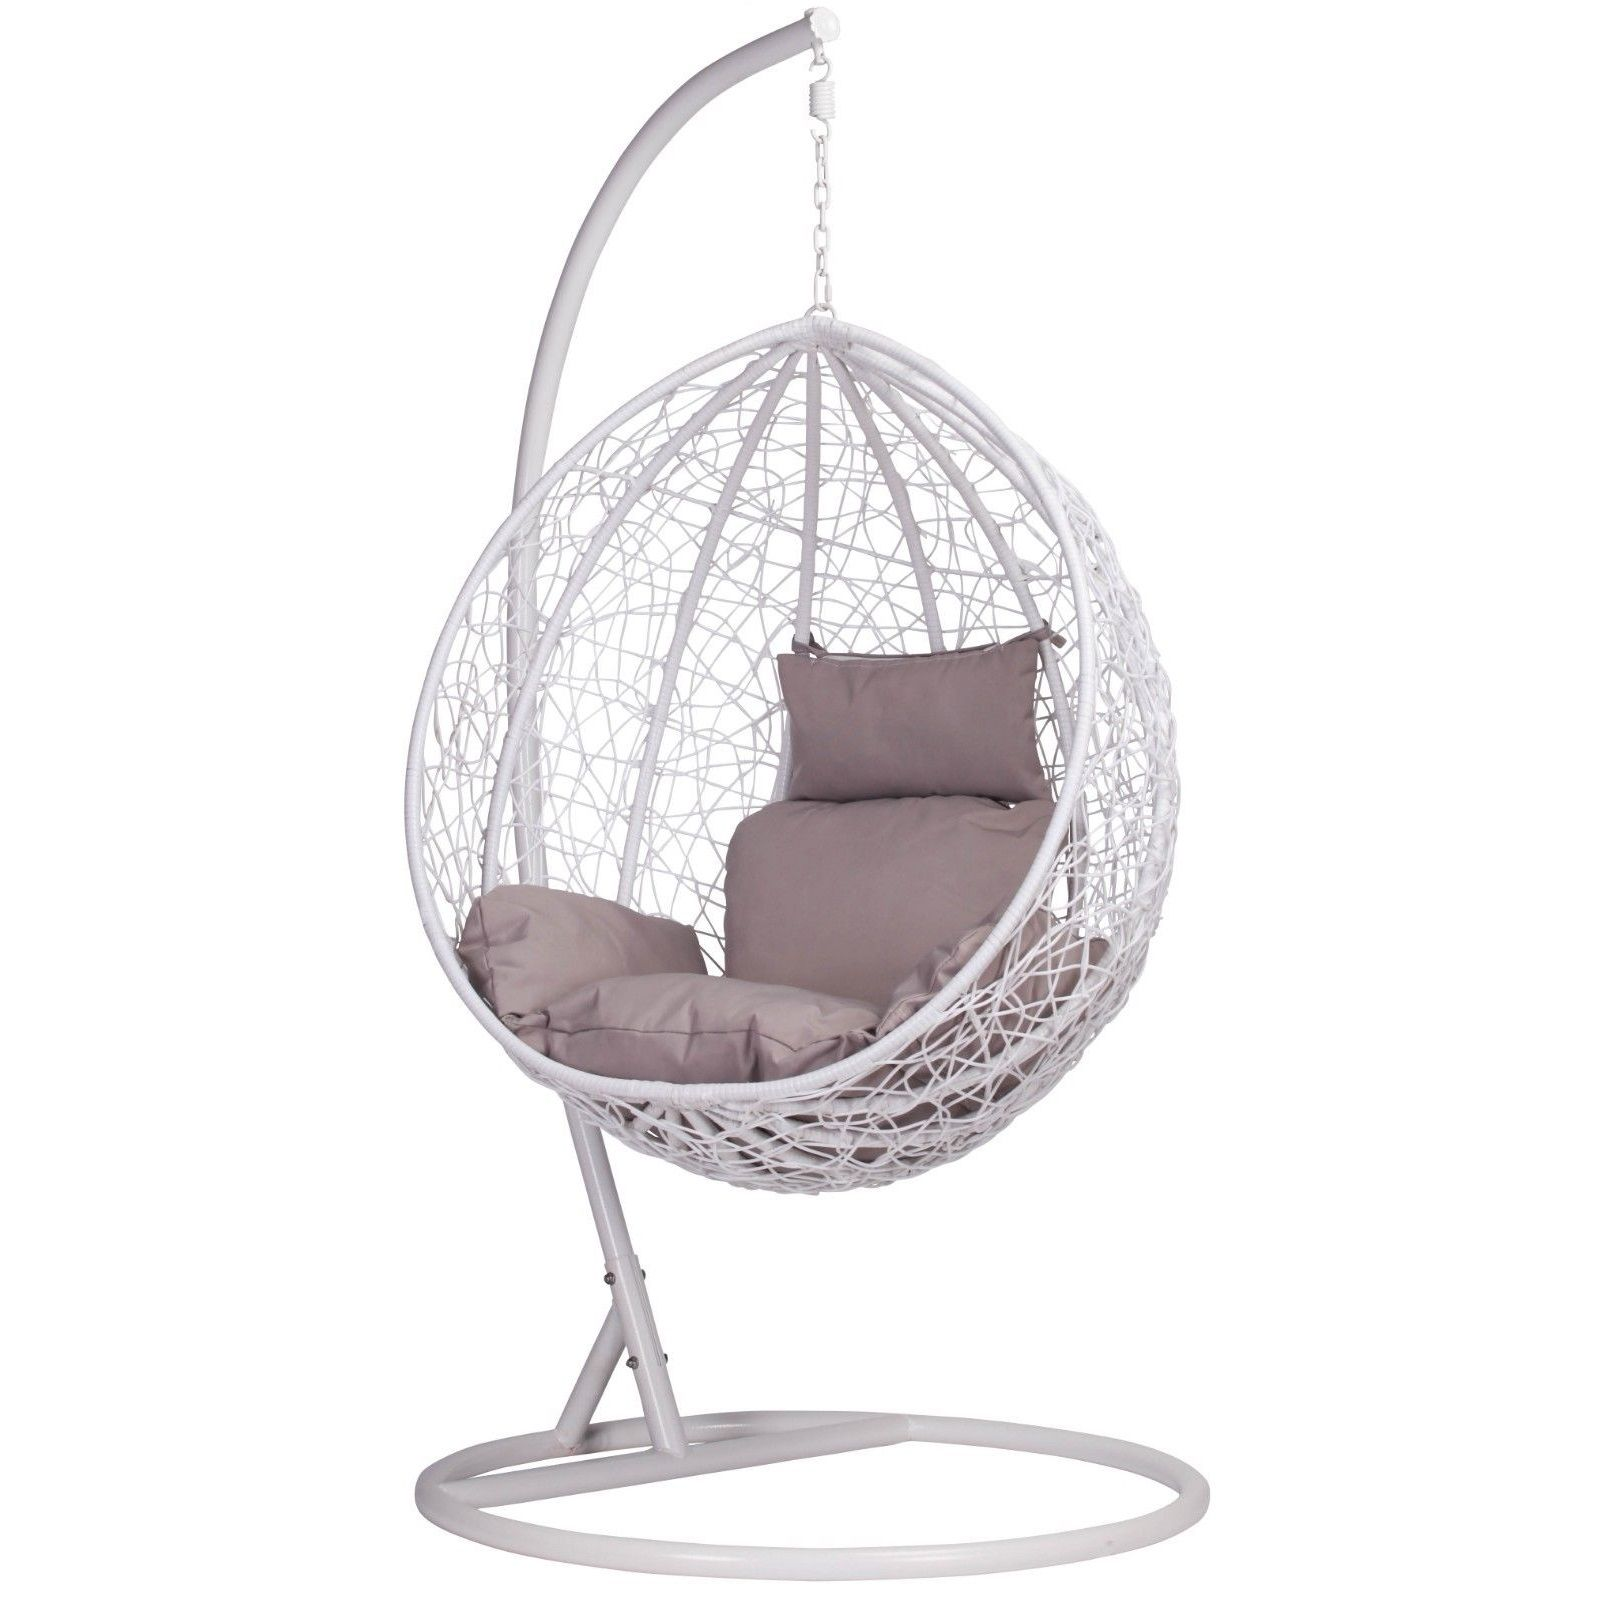 White Rattan Swing Weave Patio Garden Hanging Egg Chair in